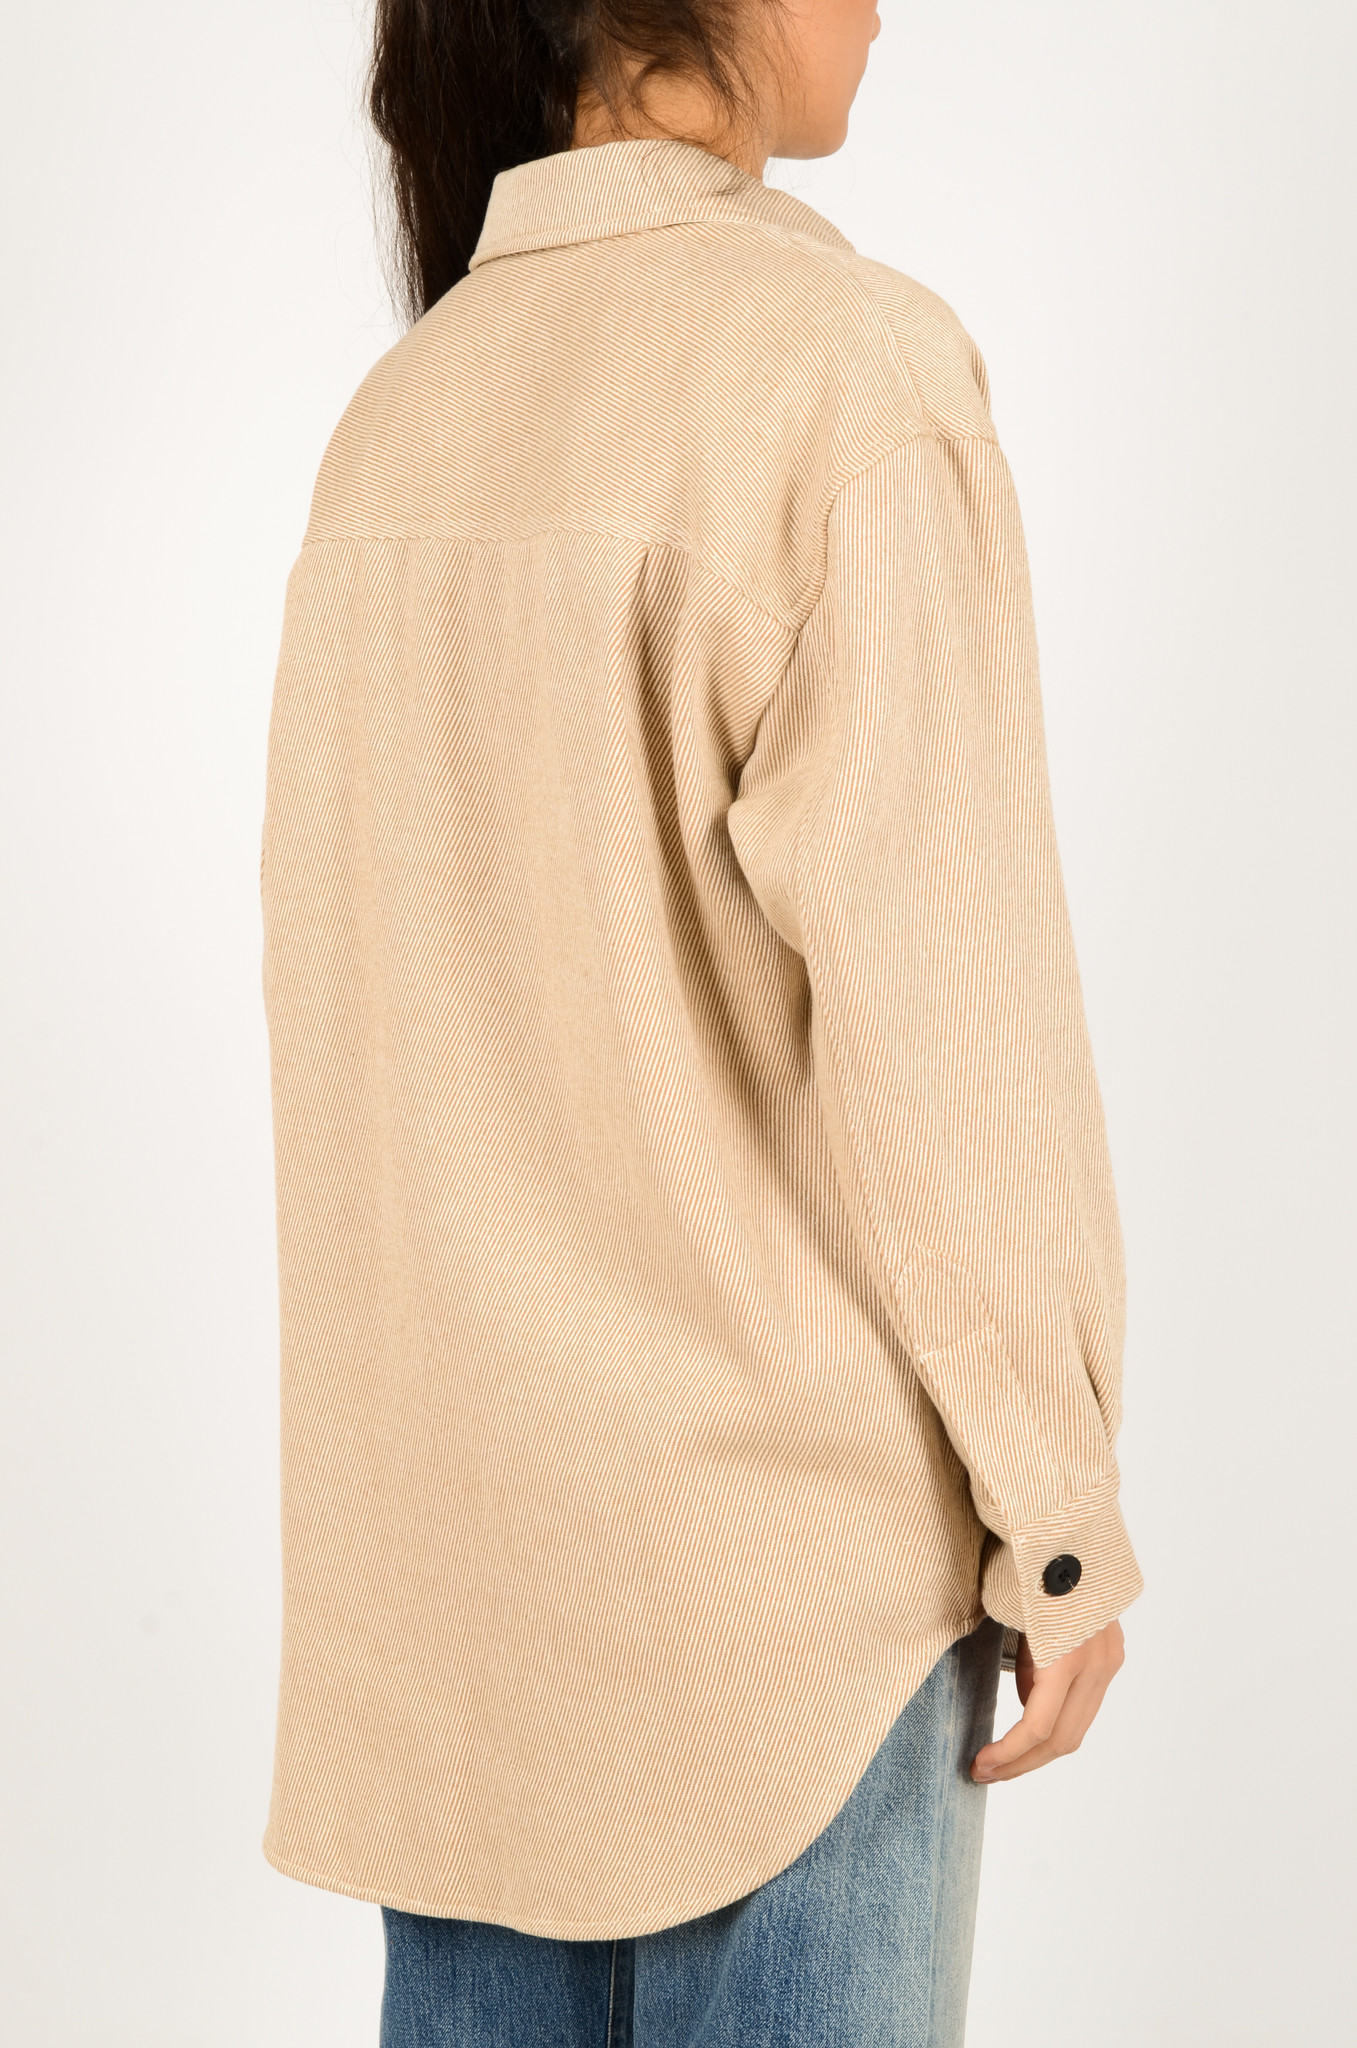 PALERMO SHIRT COAT IN CAMEL-4